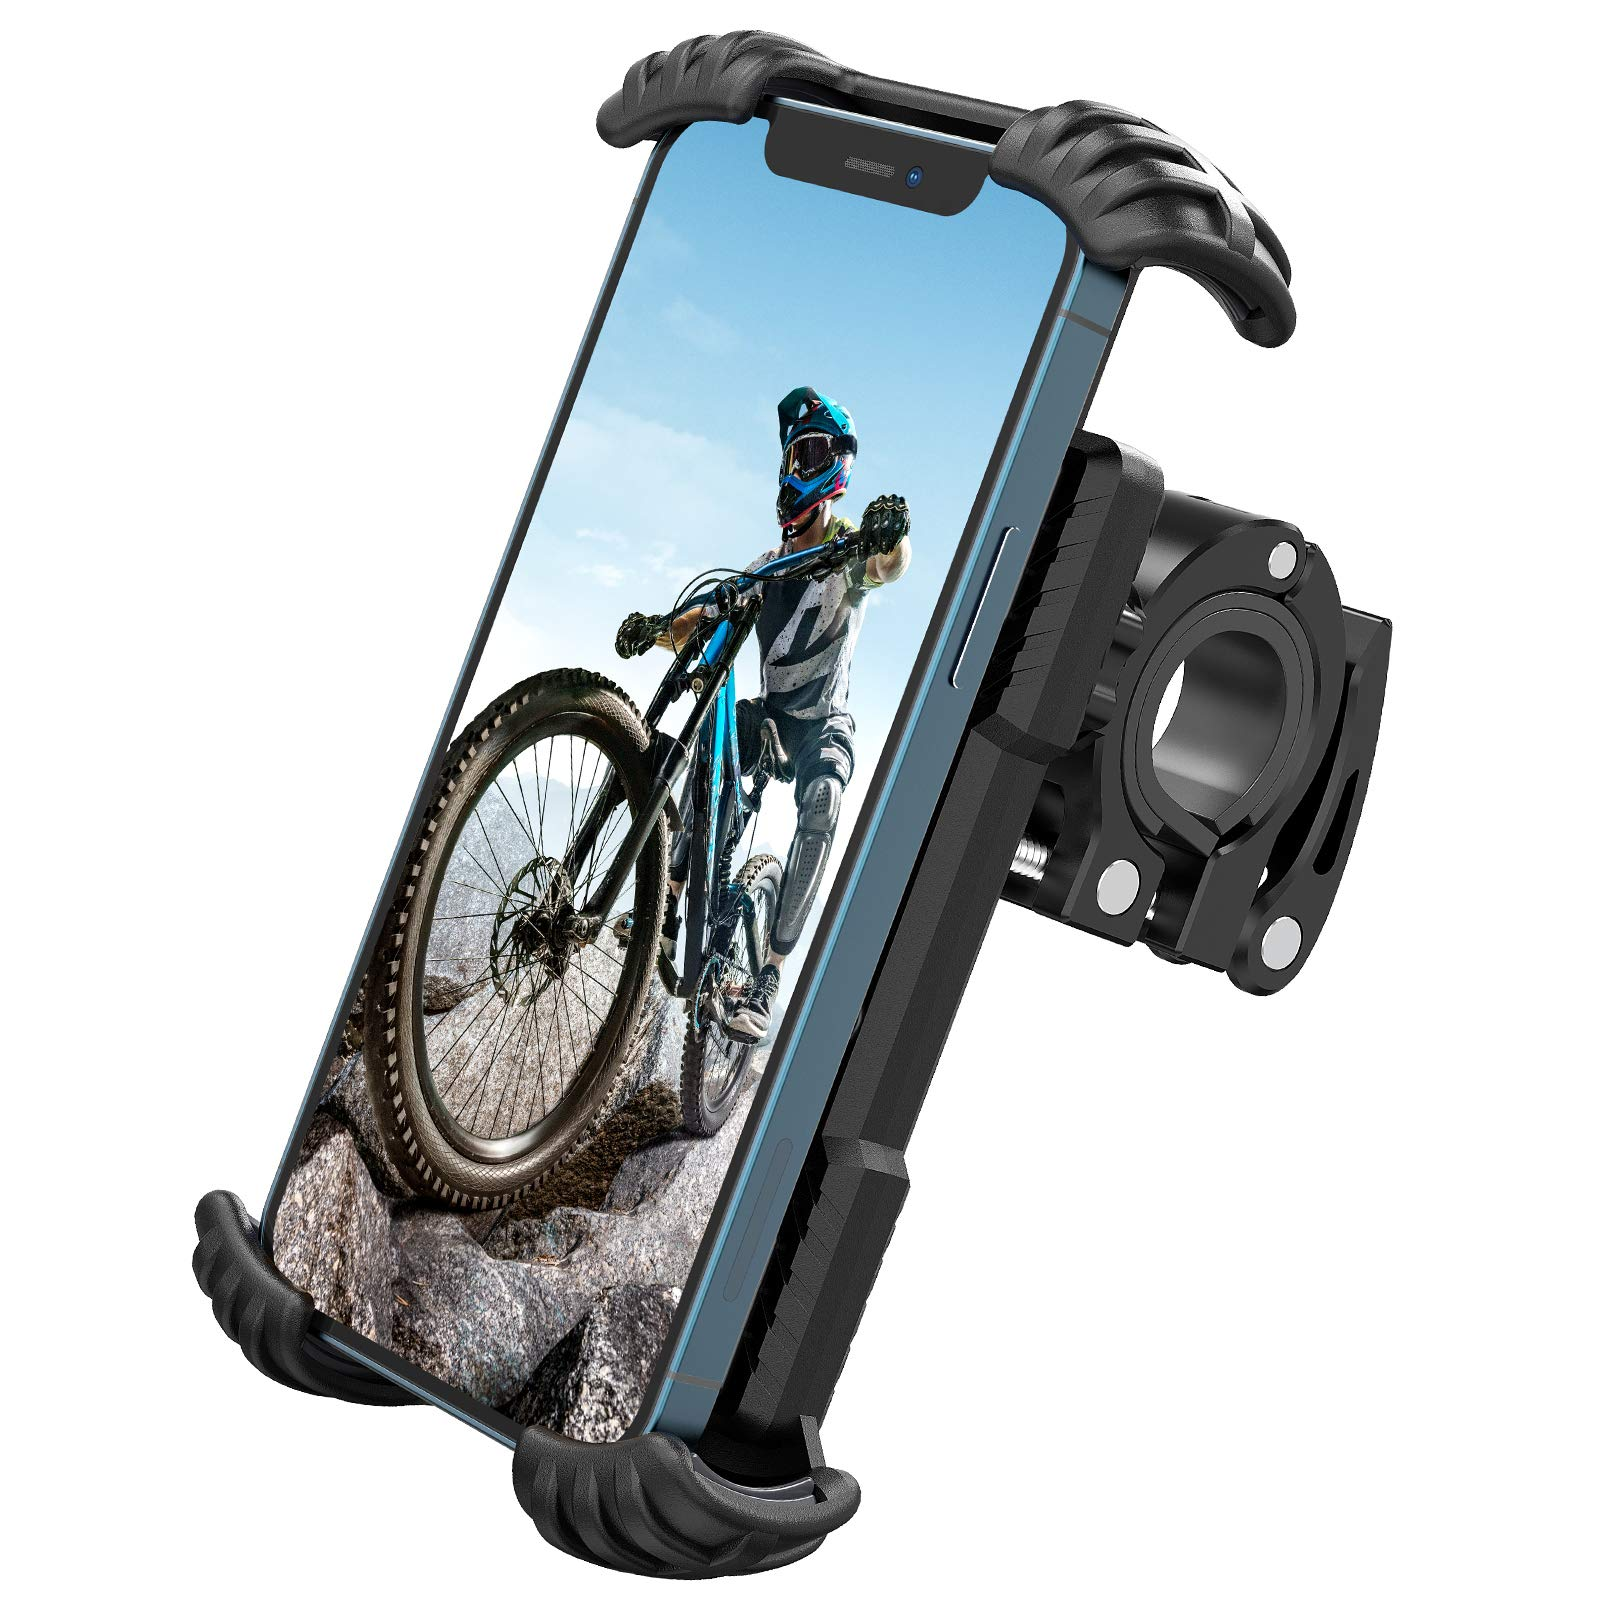 "Nulaxy H18 Bike Phone Mount, Bicycle Phone Holder - Handlebar Adjustable Motorcycle Cell Phone Mount Clamp, Compatible with Phone 12 / Phone 11 Pro Max, S9, S10, S20+ and More 4.7"" - 6.8"" Devices"